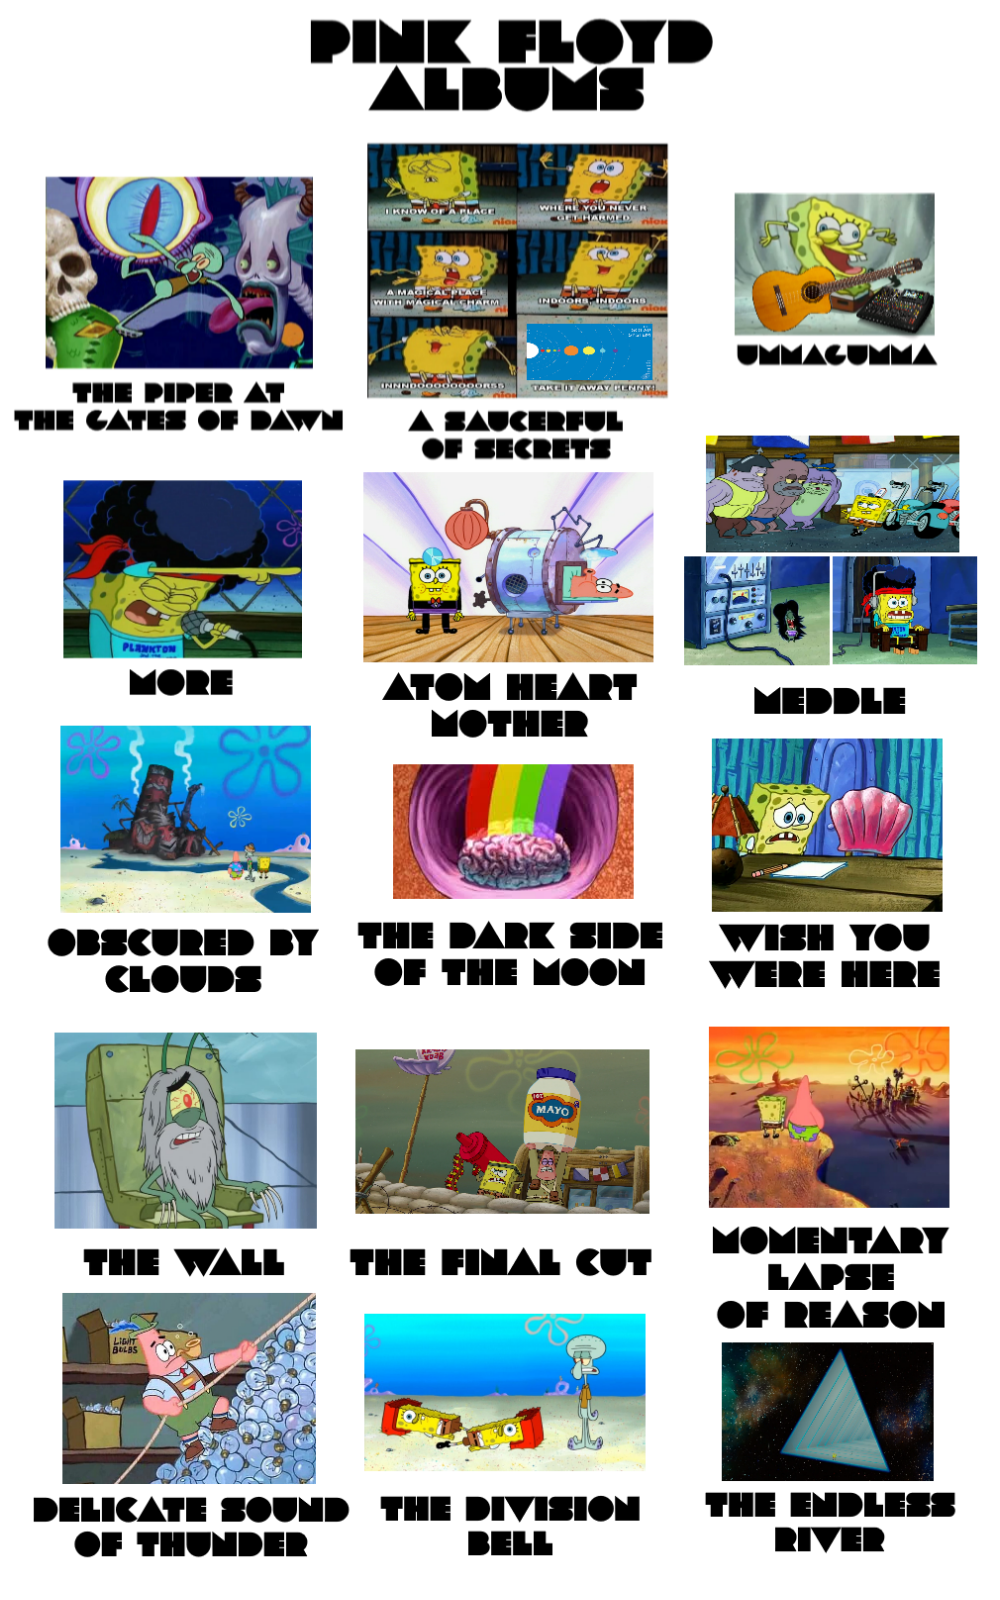 801 spongebob as pink floyd albums spongebob comparison charts